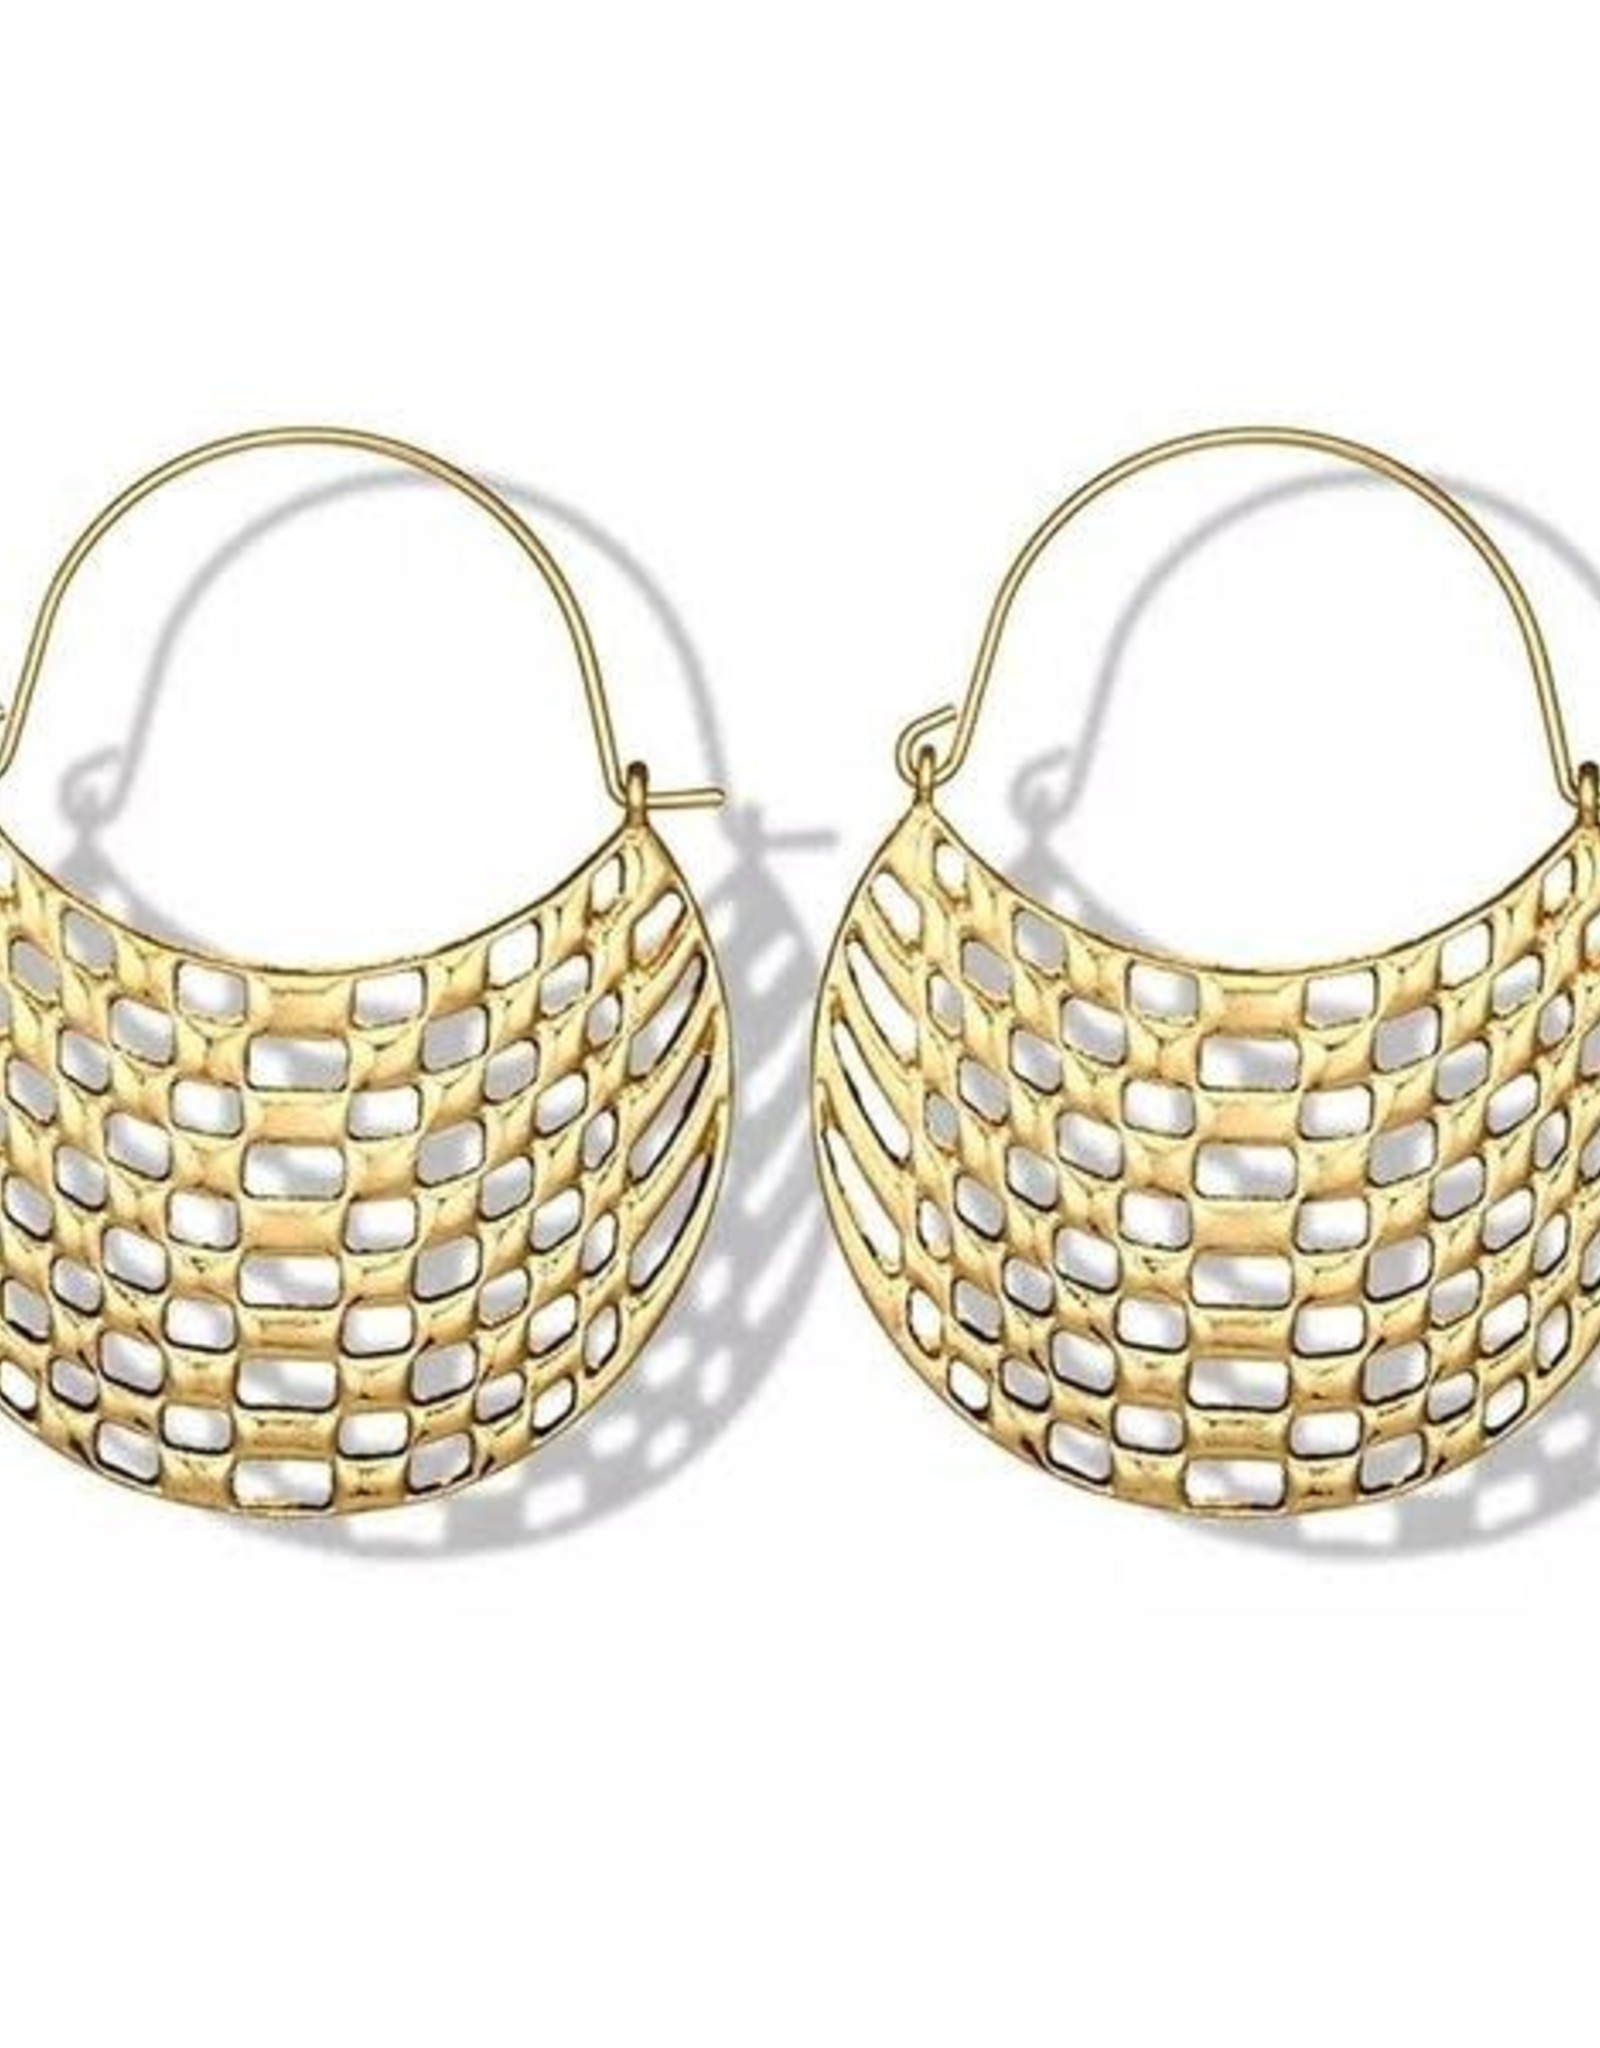 Arabella Lattice Earrings Gold